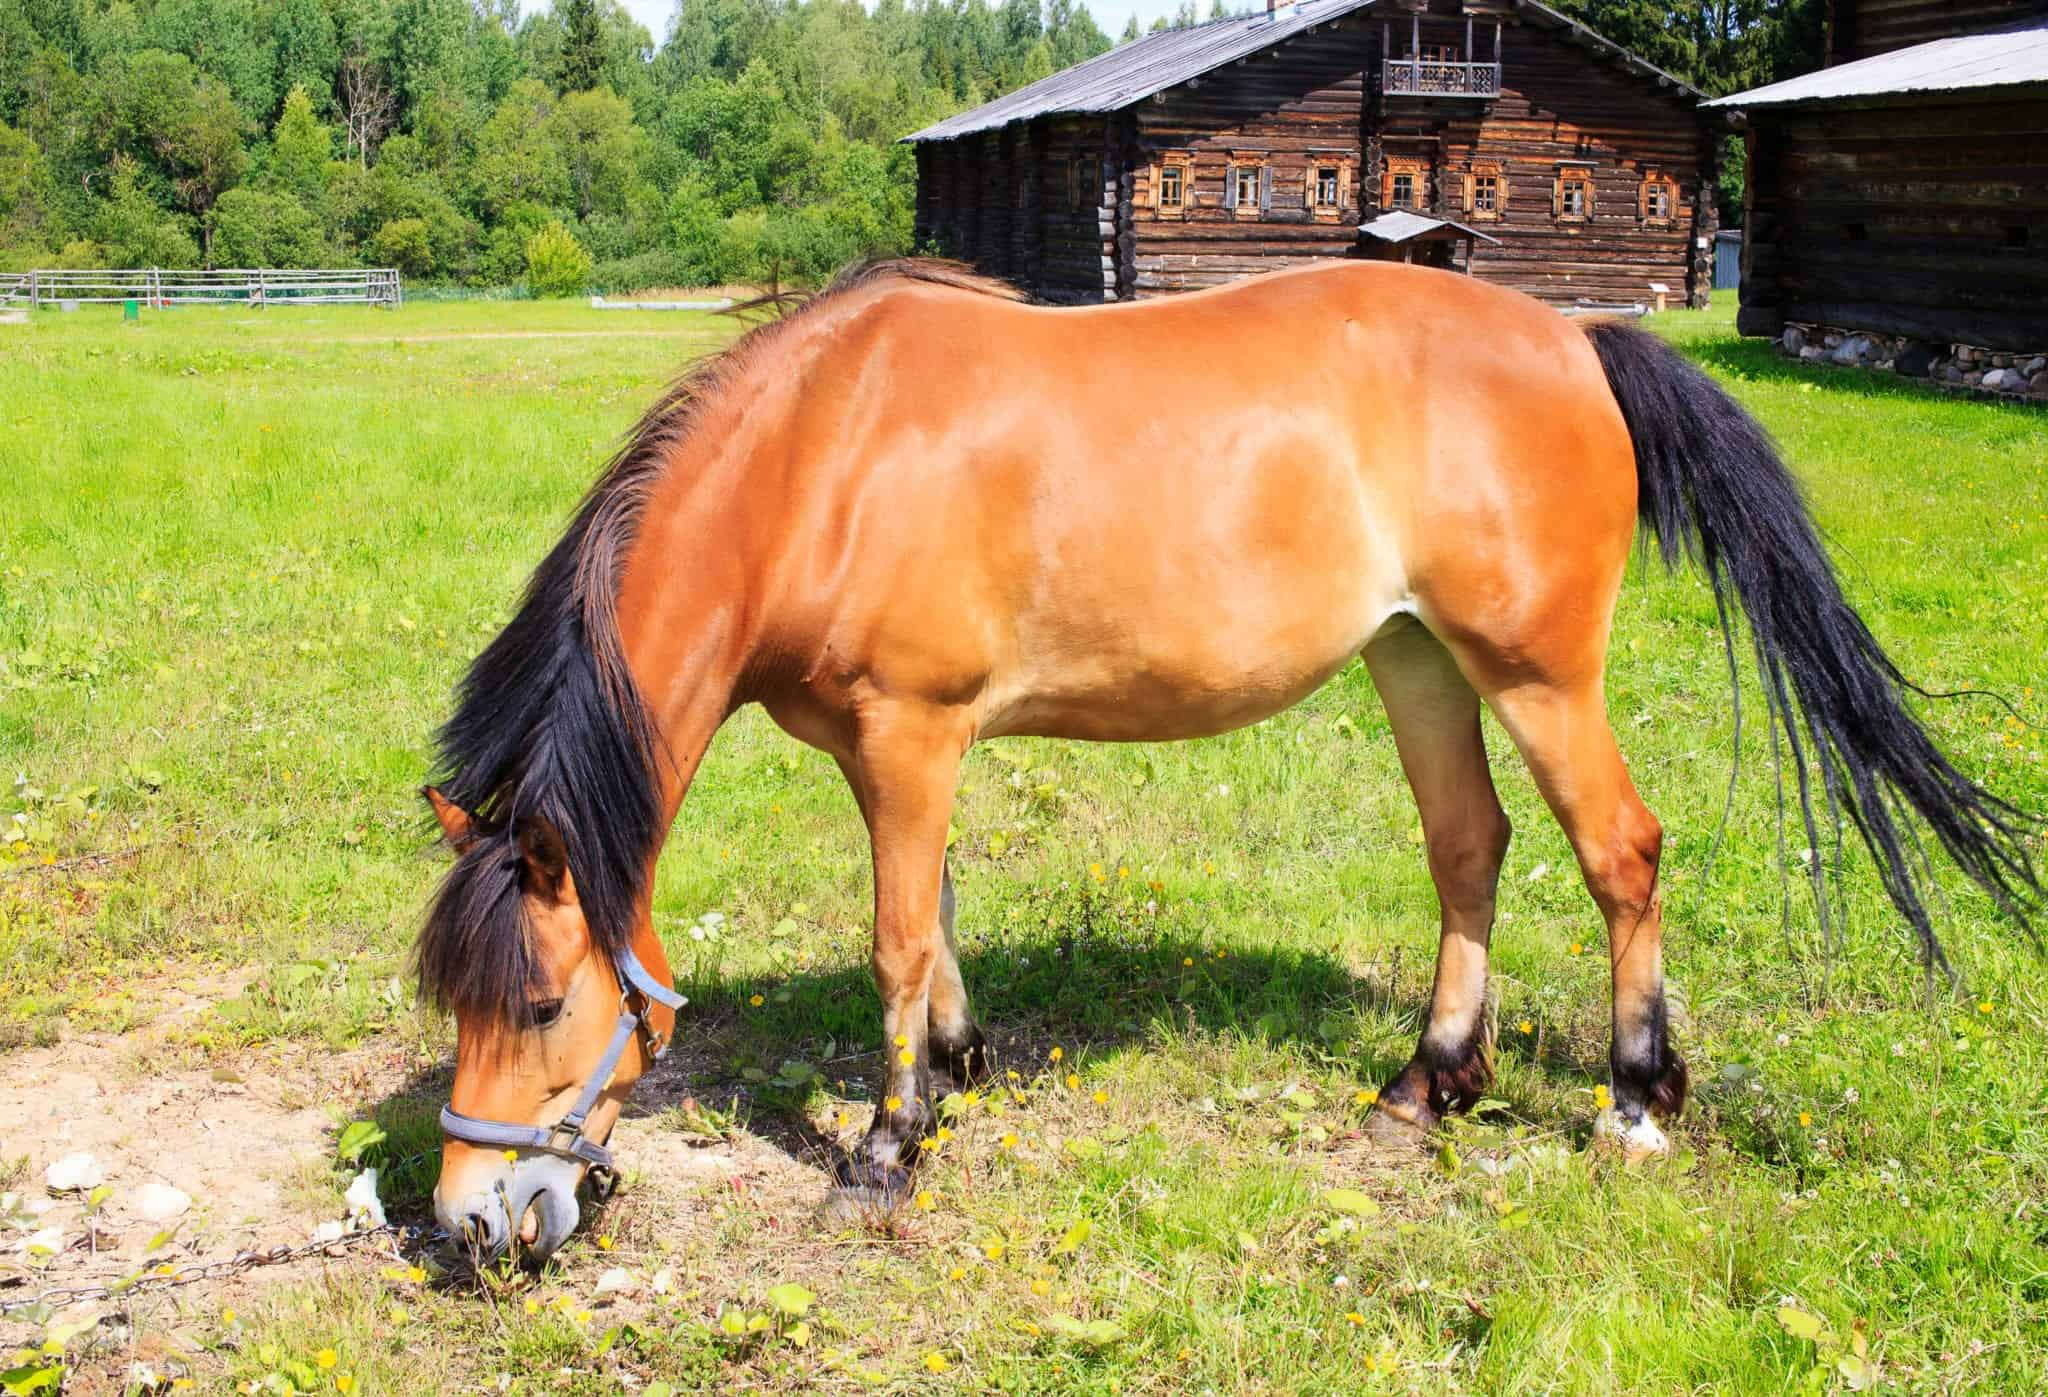 Buckskin horse grazes on the chain on the lawn in the village